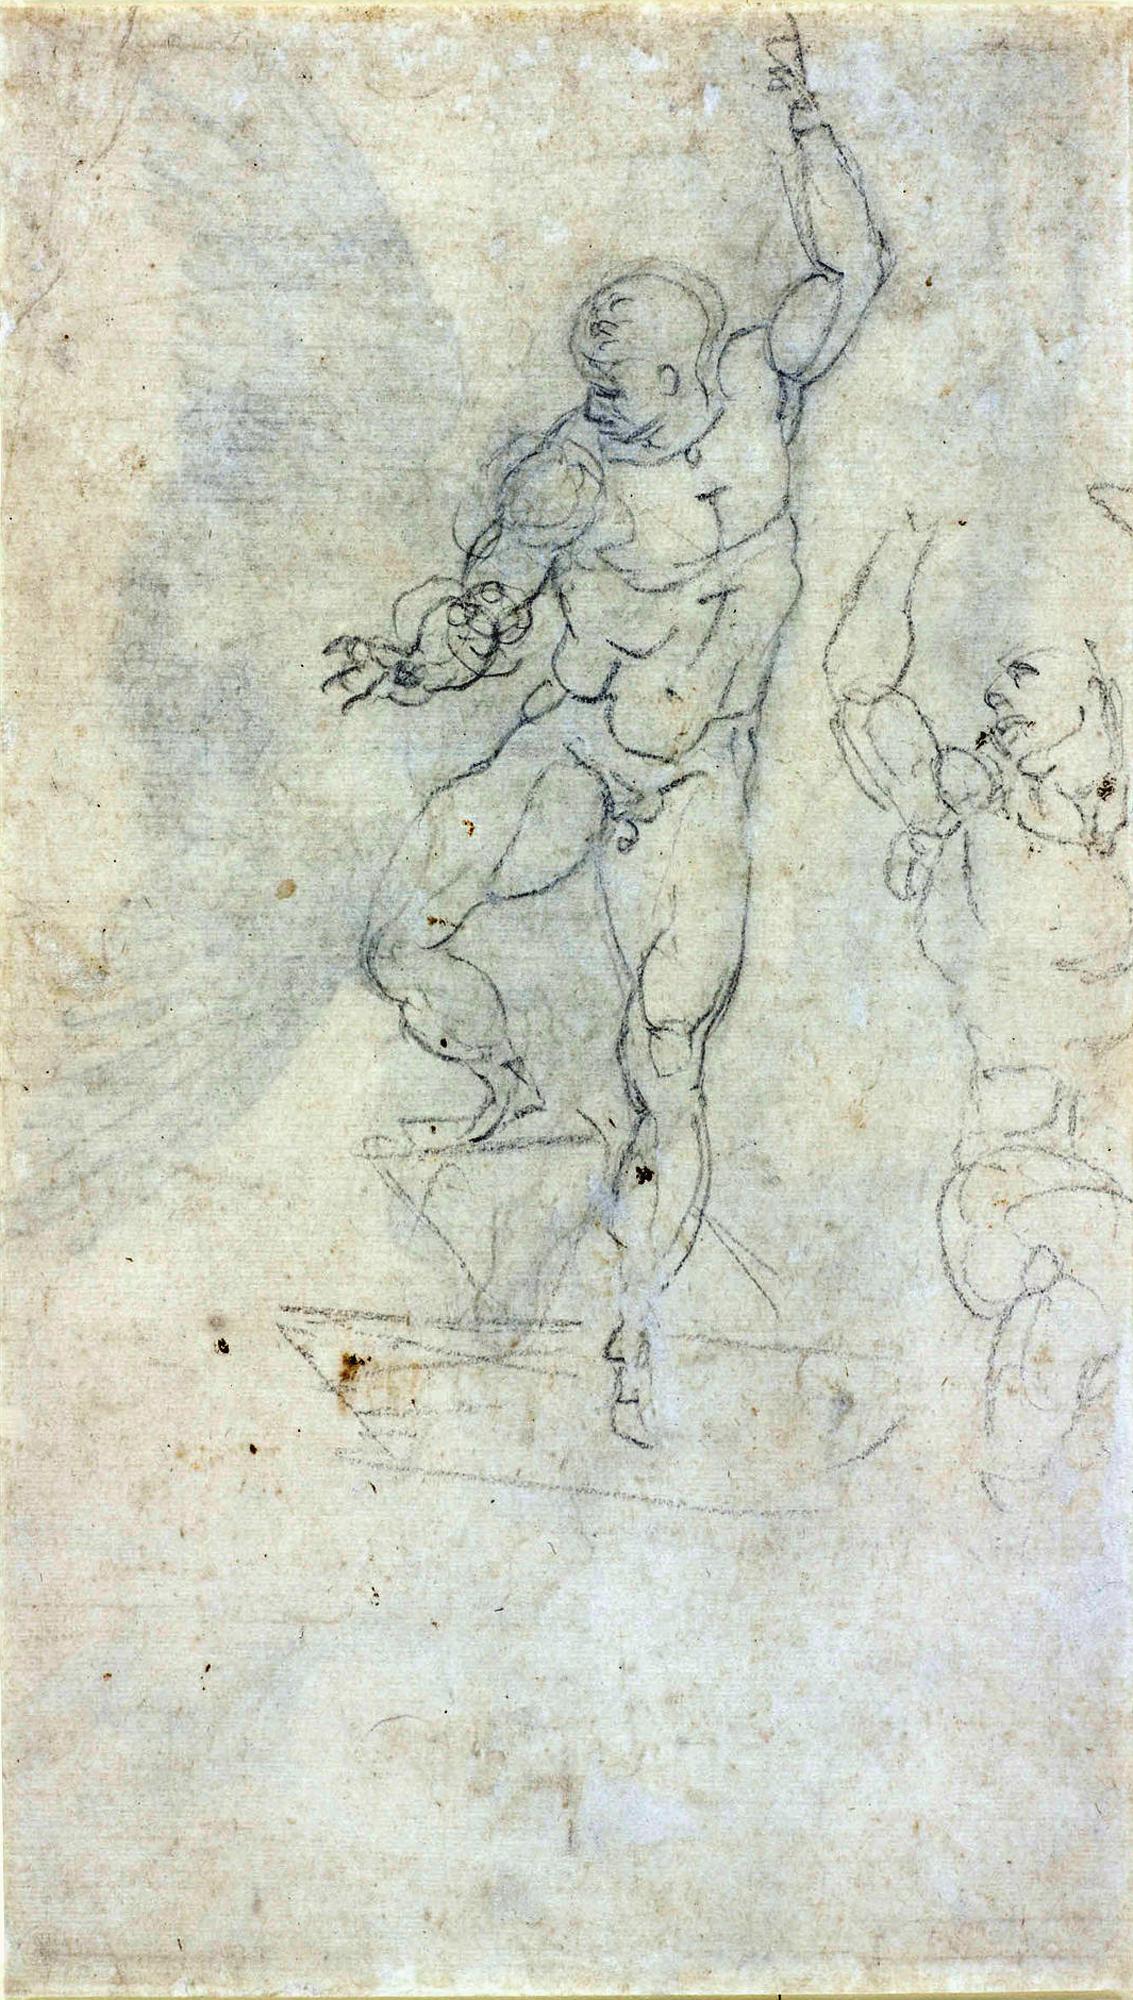 Michelangelo-Buonarroti--Drawing---The-Resurrection-Study.jpg